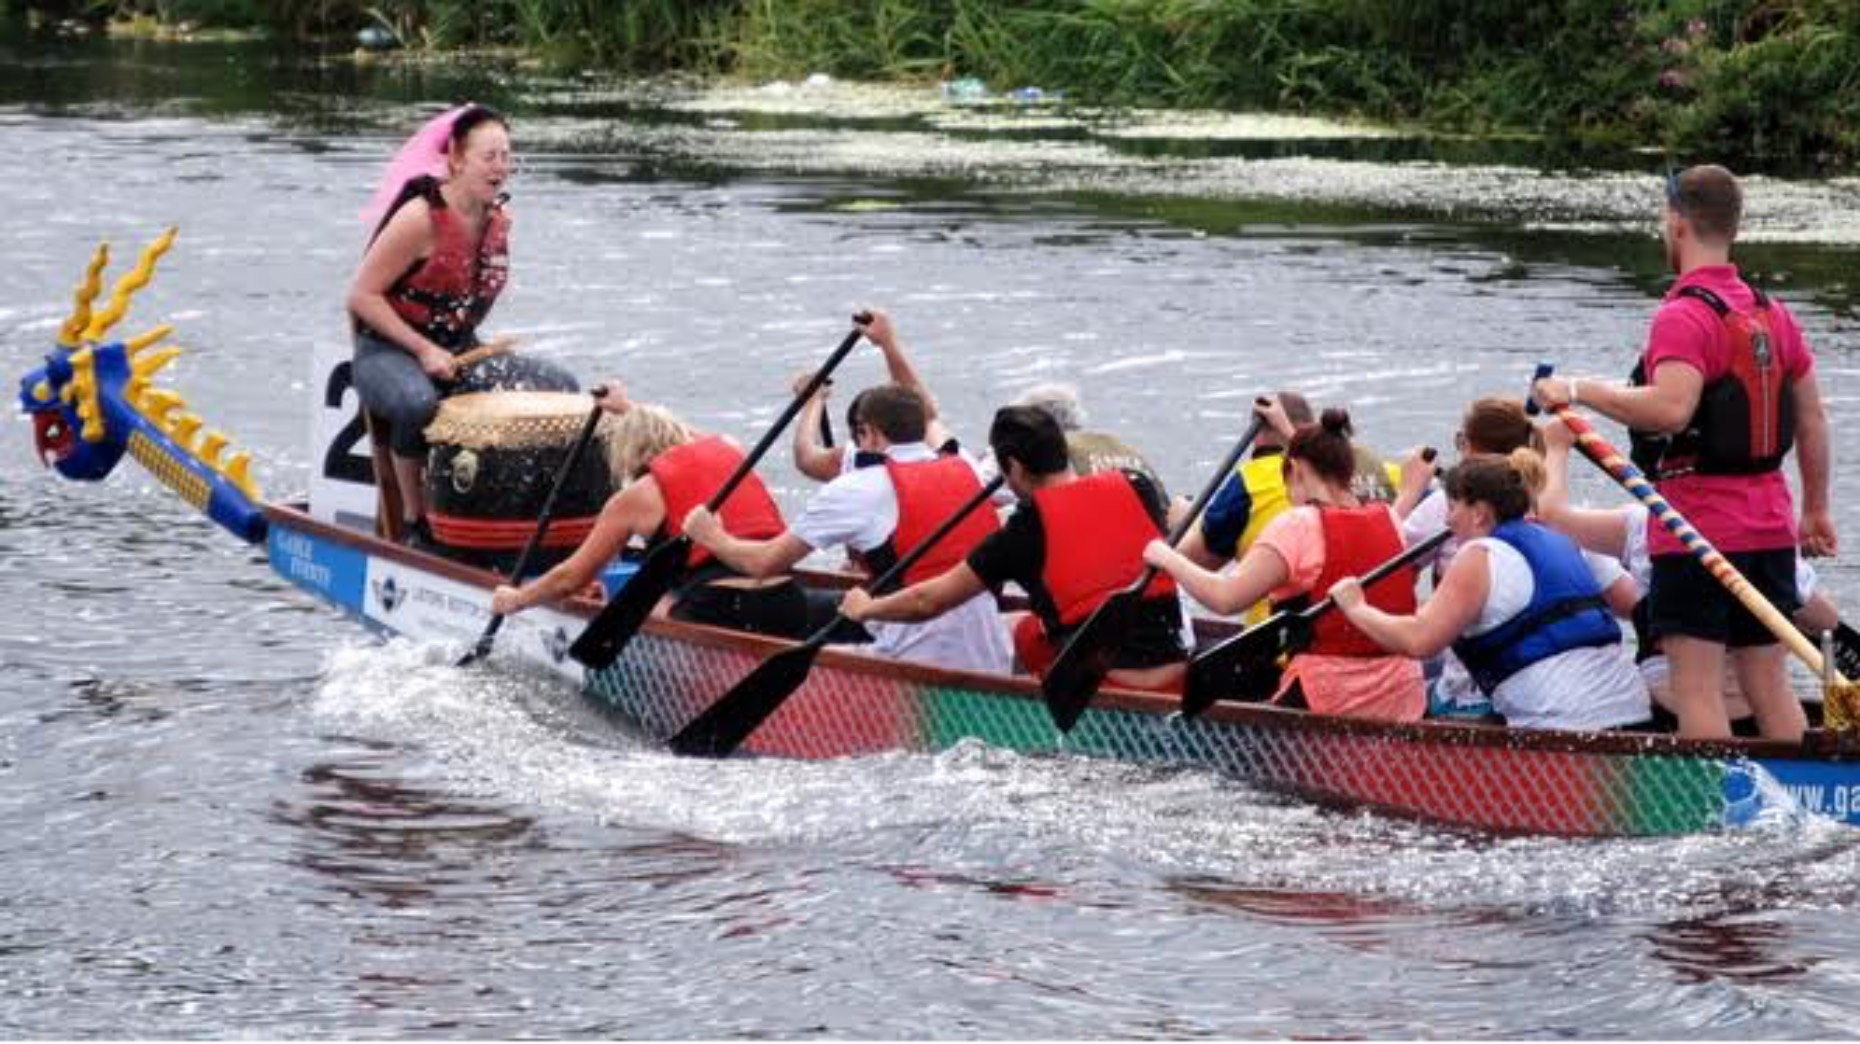 Dragon Boat Teams Fired Up For Brayford Race